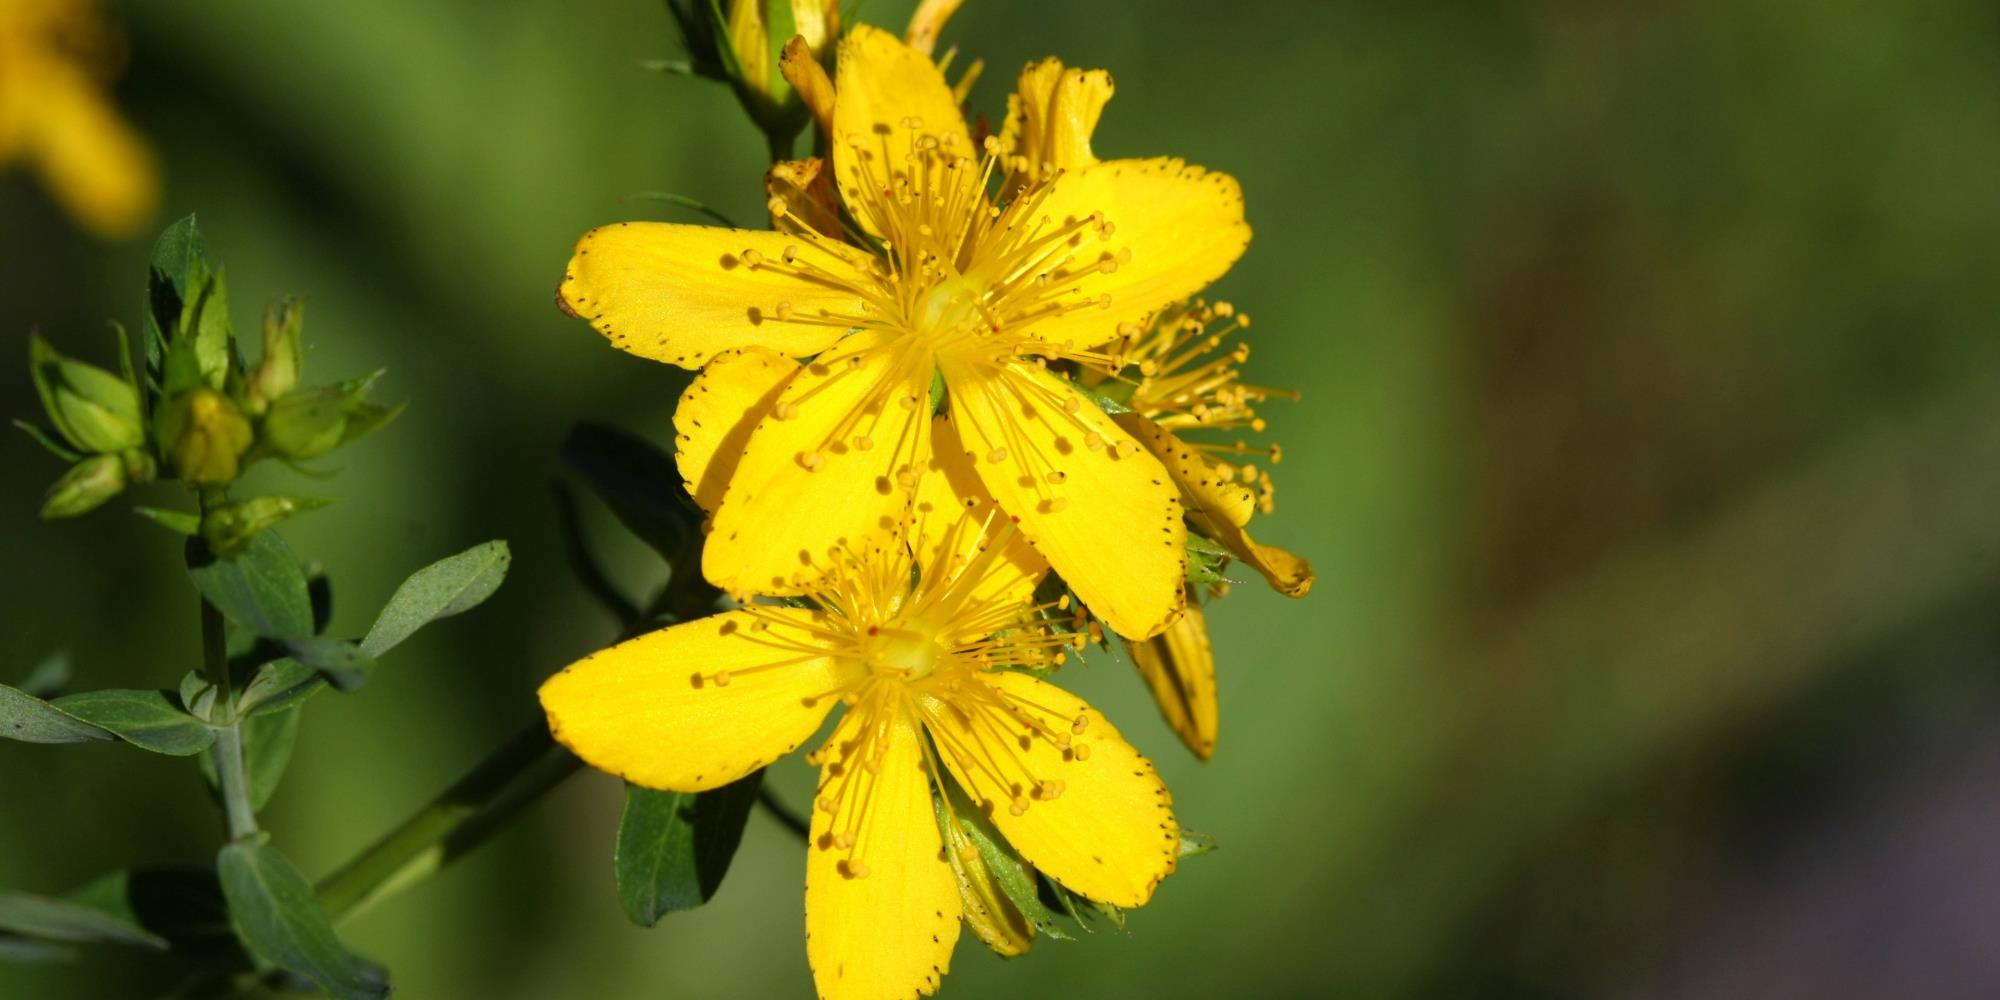 What are the benefits of St. John's Wort?